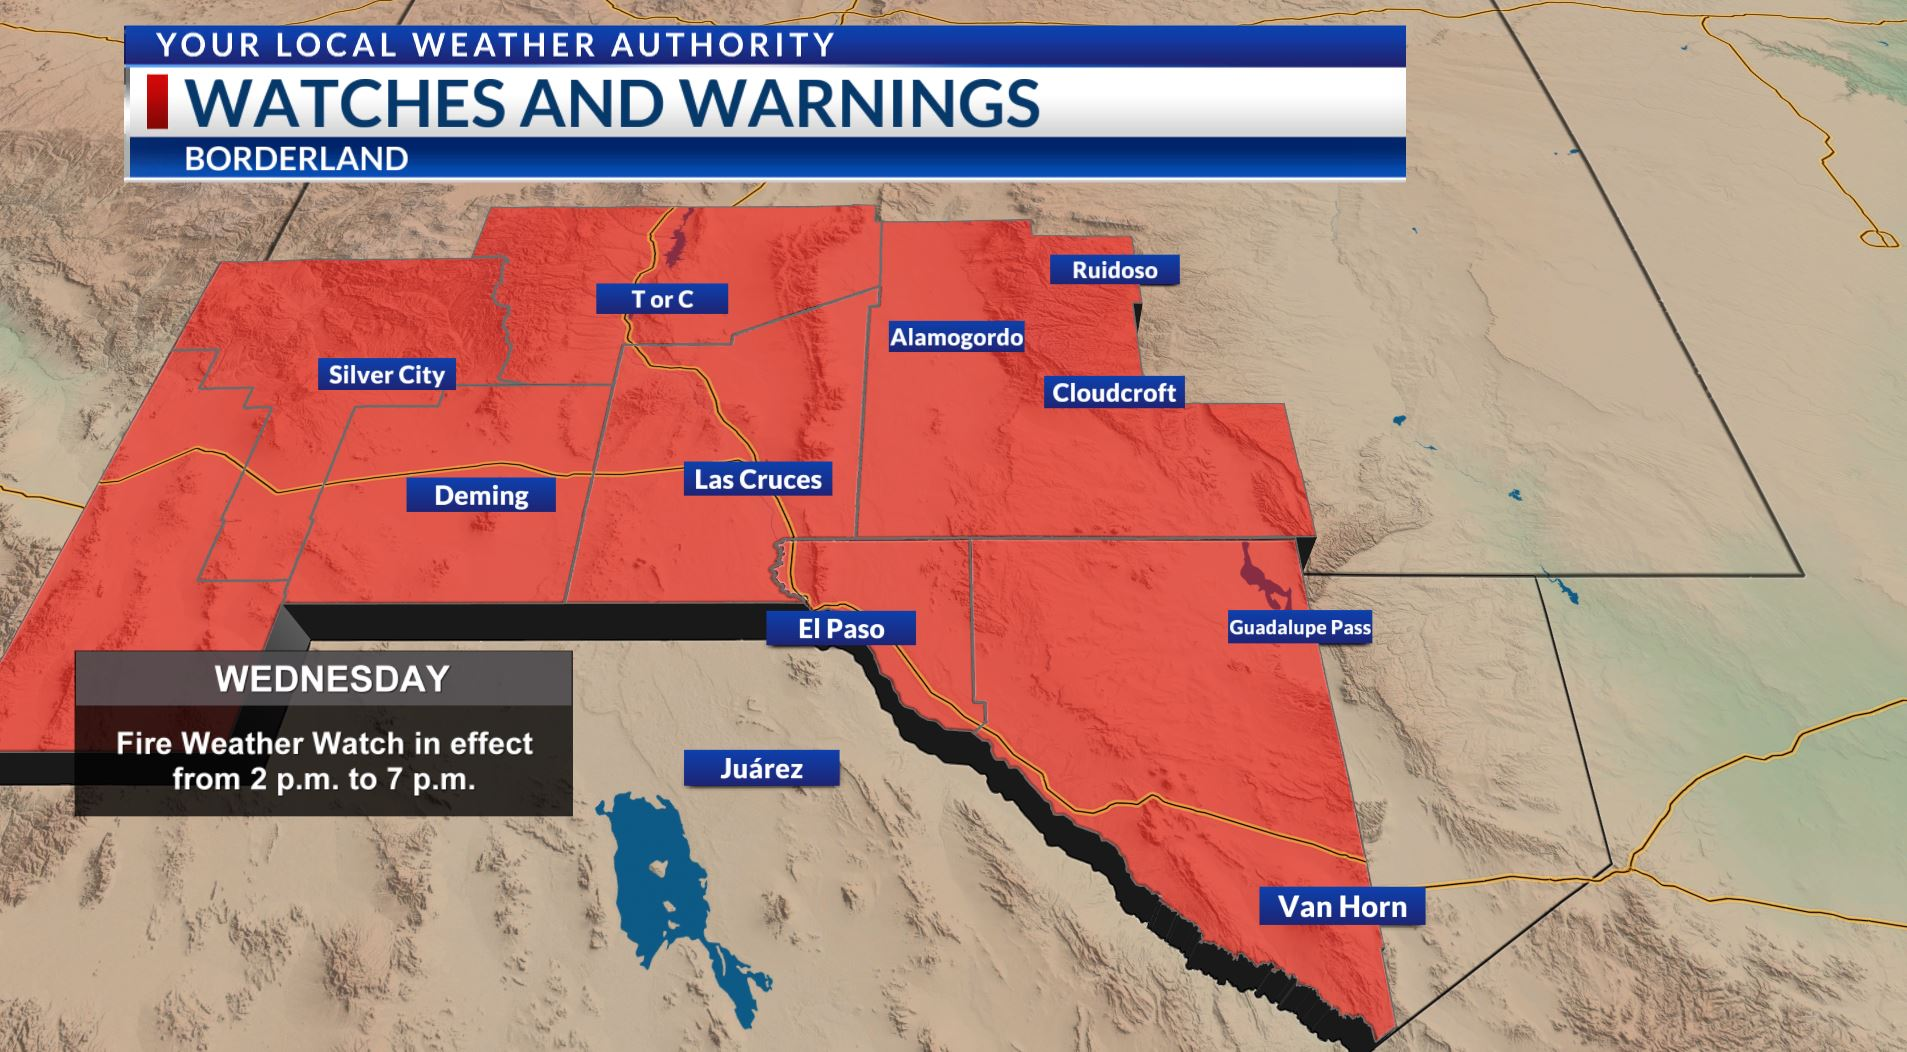 Fire Weather Watch issued for the Borderland